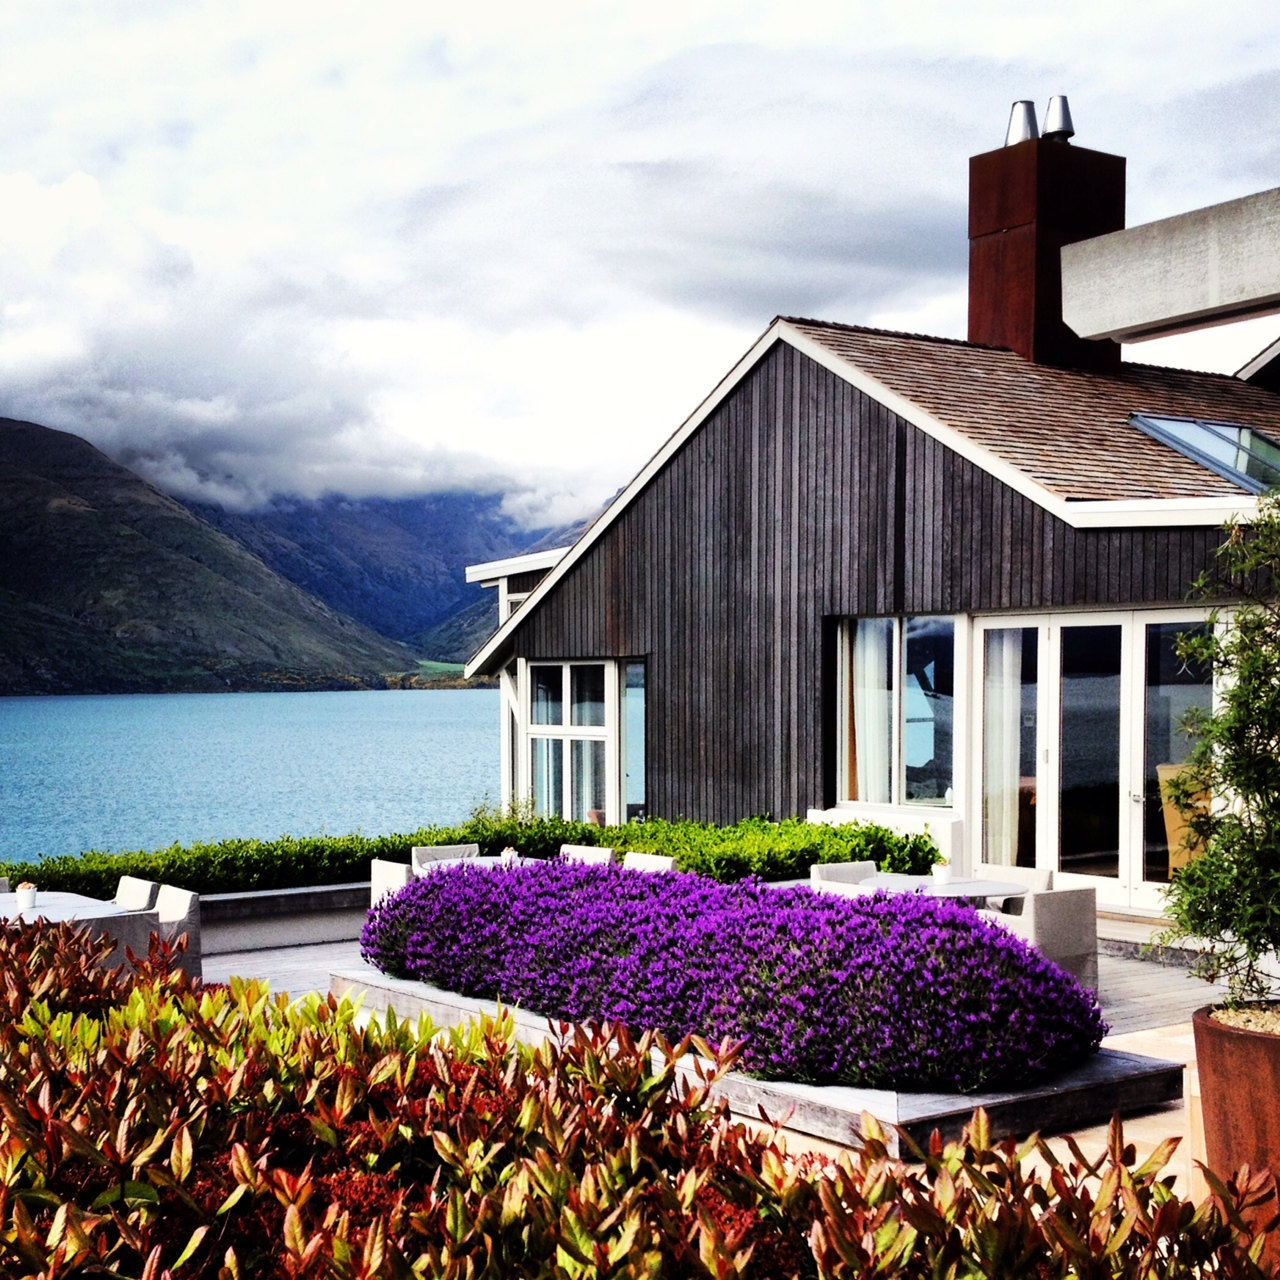 One of my favourite stays of 2013, Matakauri Lodge in Queenstown